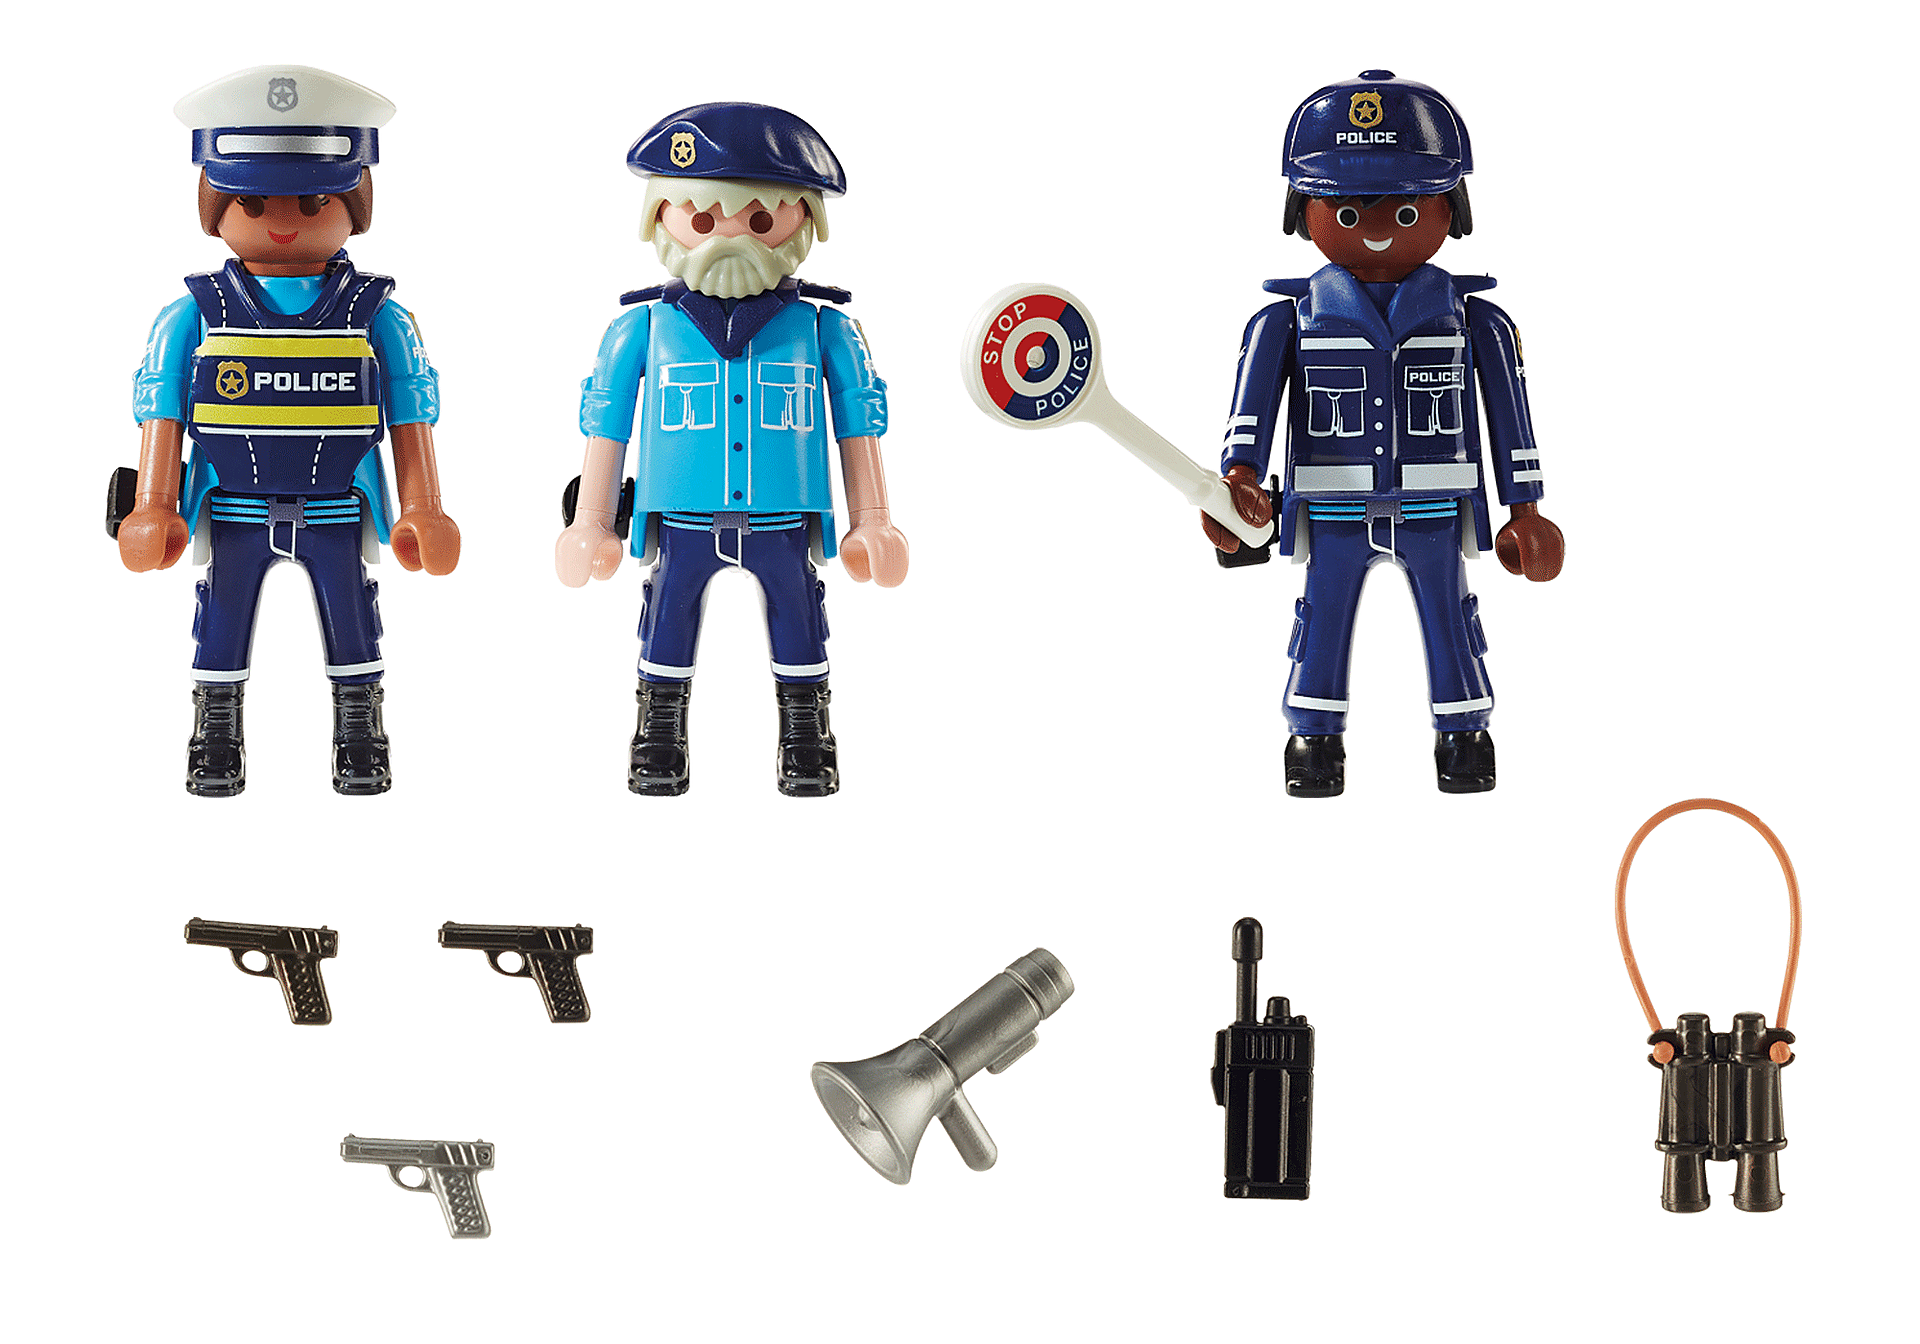 70669 Police Figure Set zoom image3